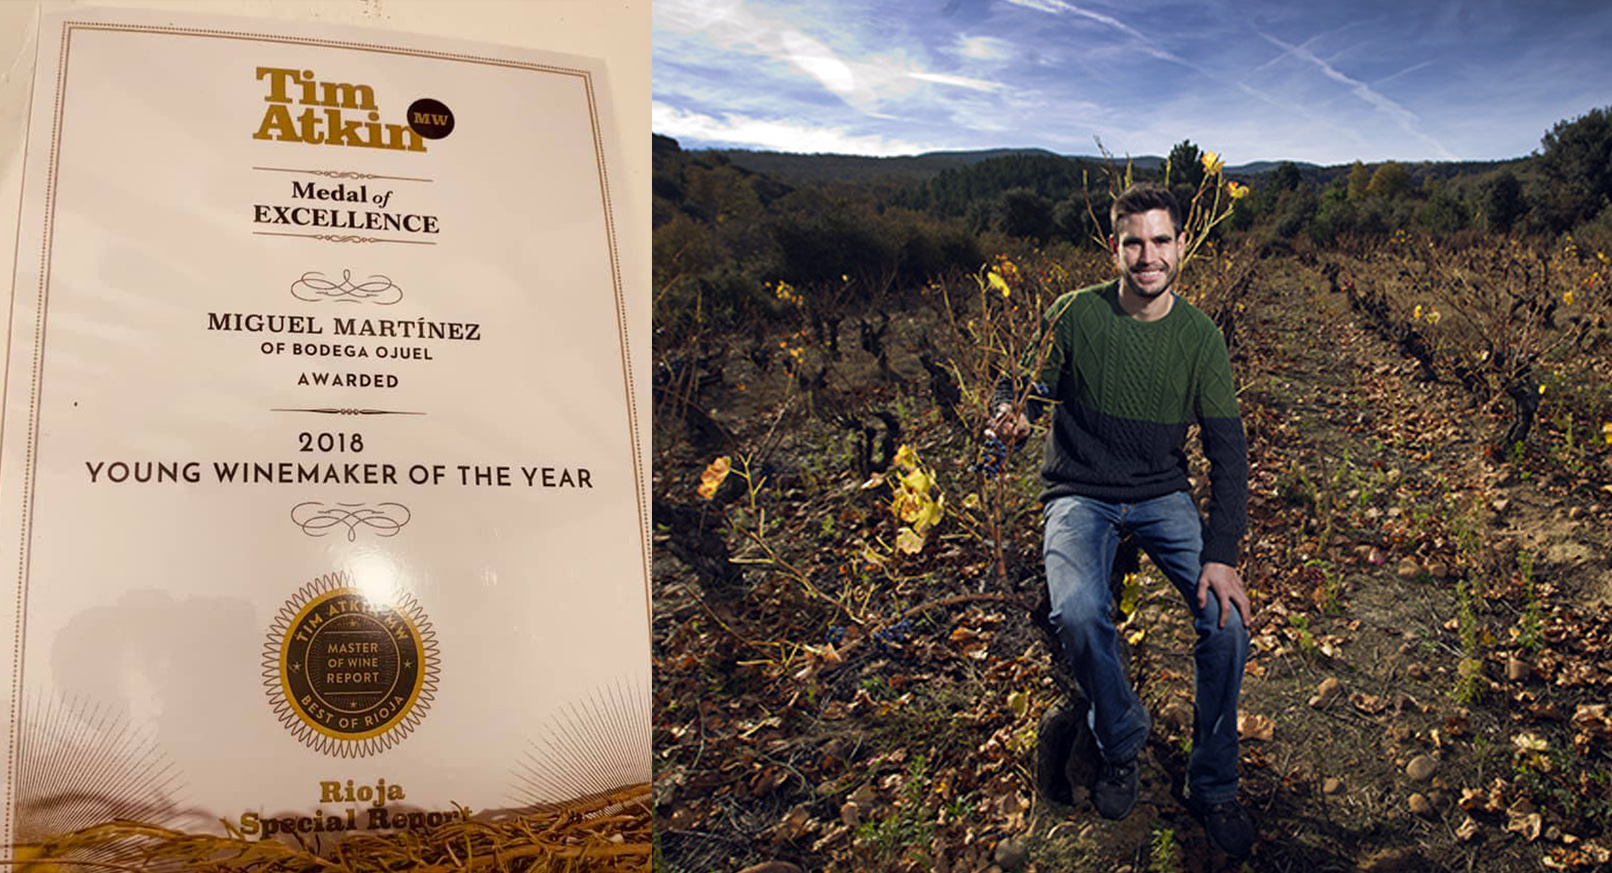 Winemaker of the Year 2018. Tim Atkim Rioja Report